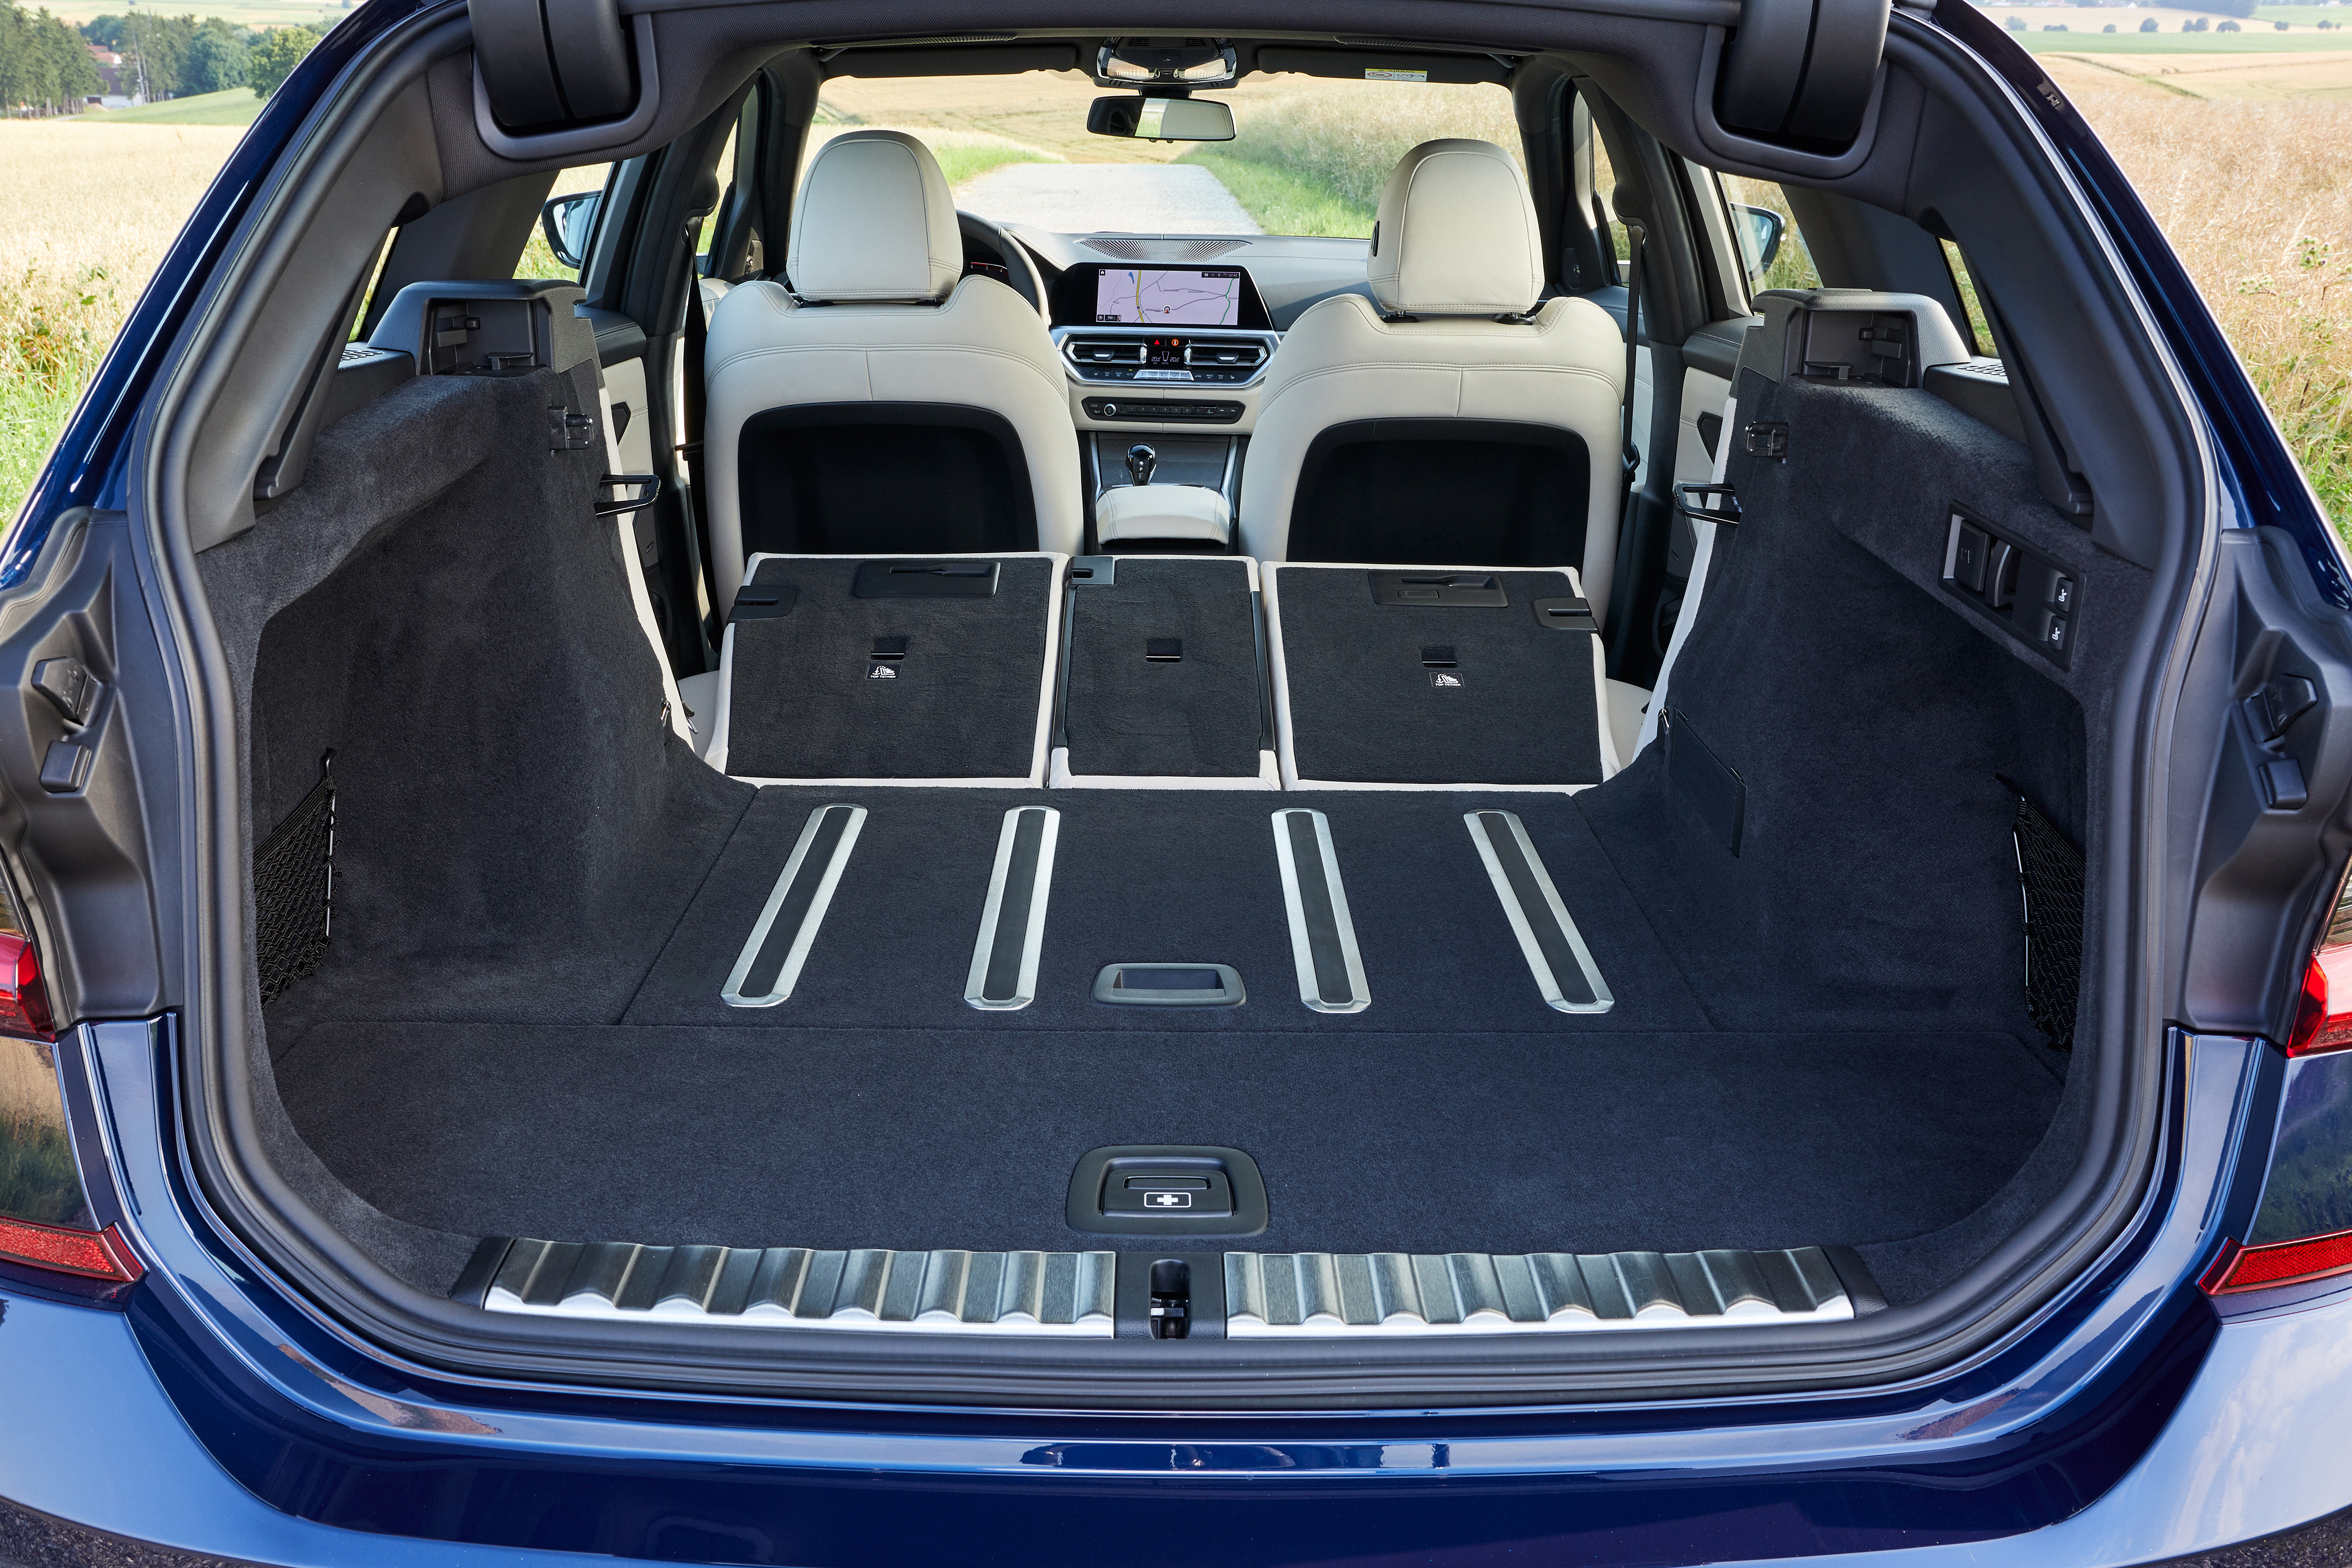 There's 1,510 litres of boot space on offer with the rear seats folded flat